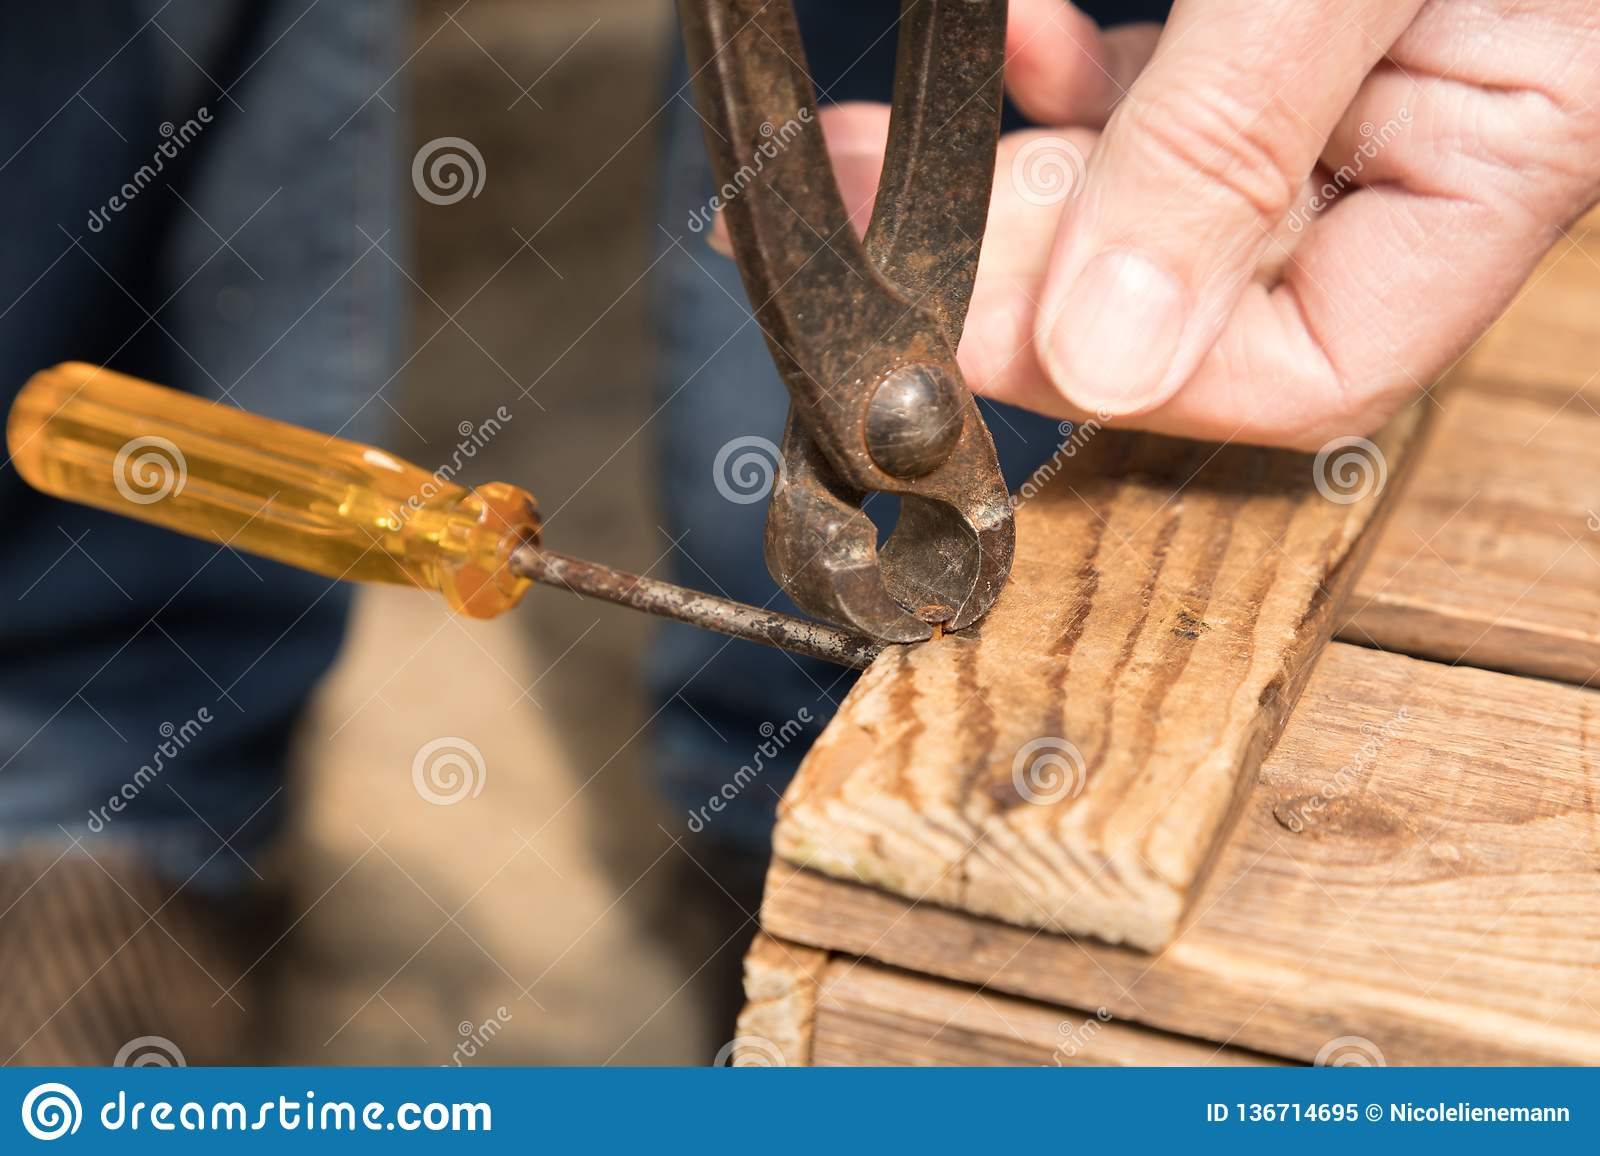 Remove a nail with a pair of pliers